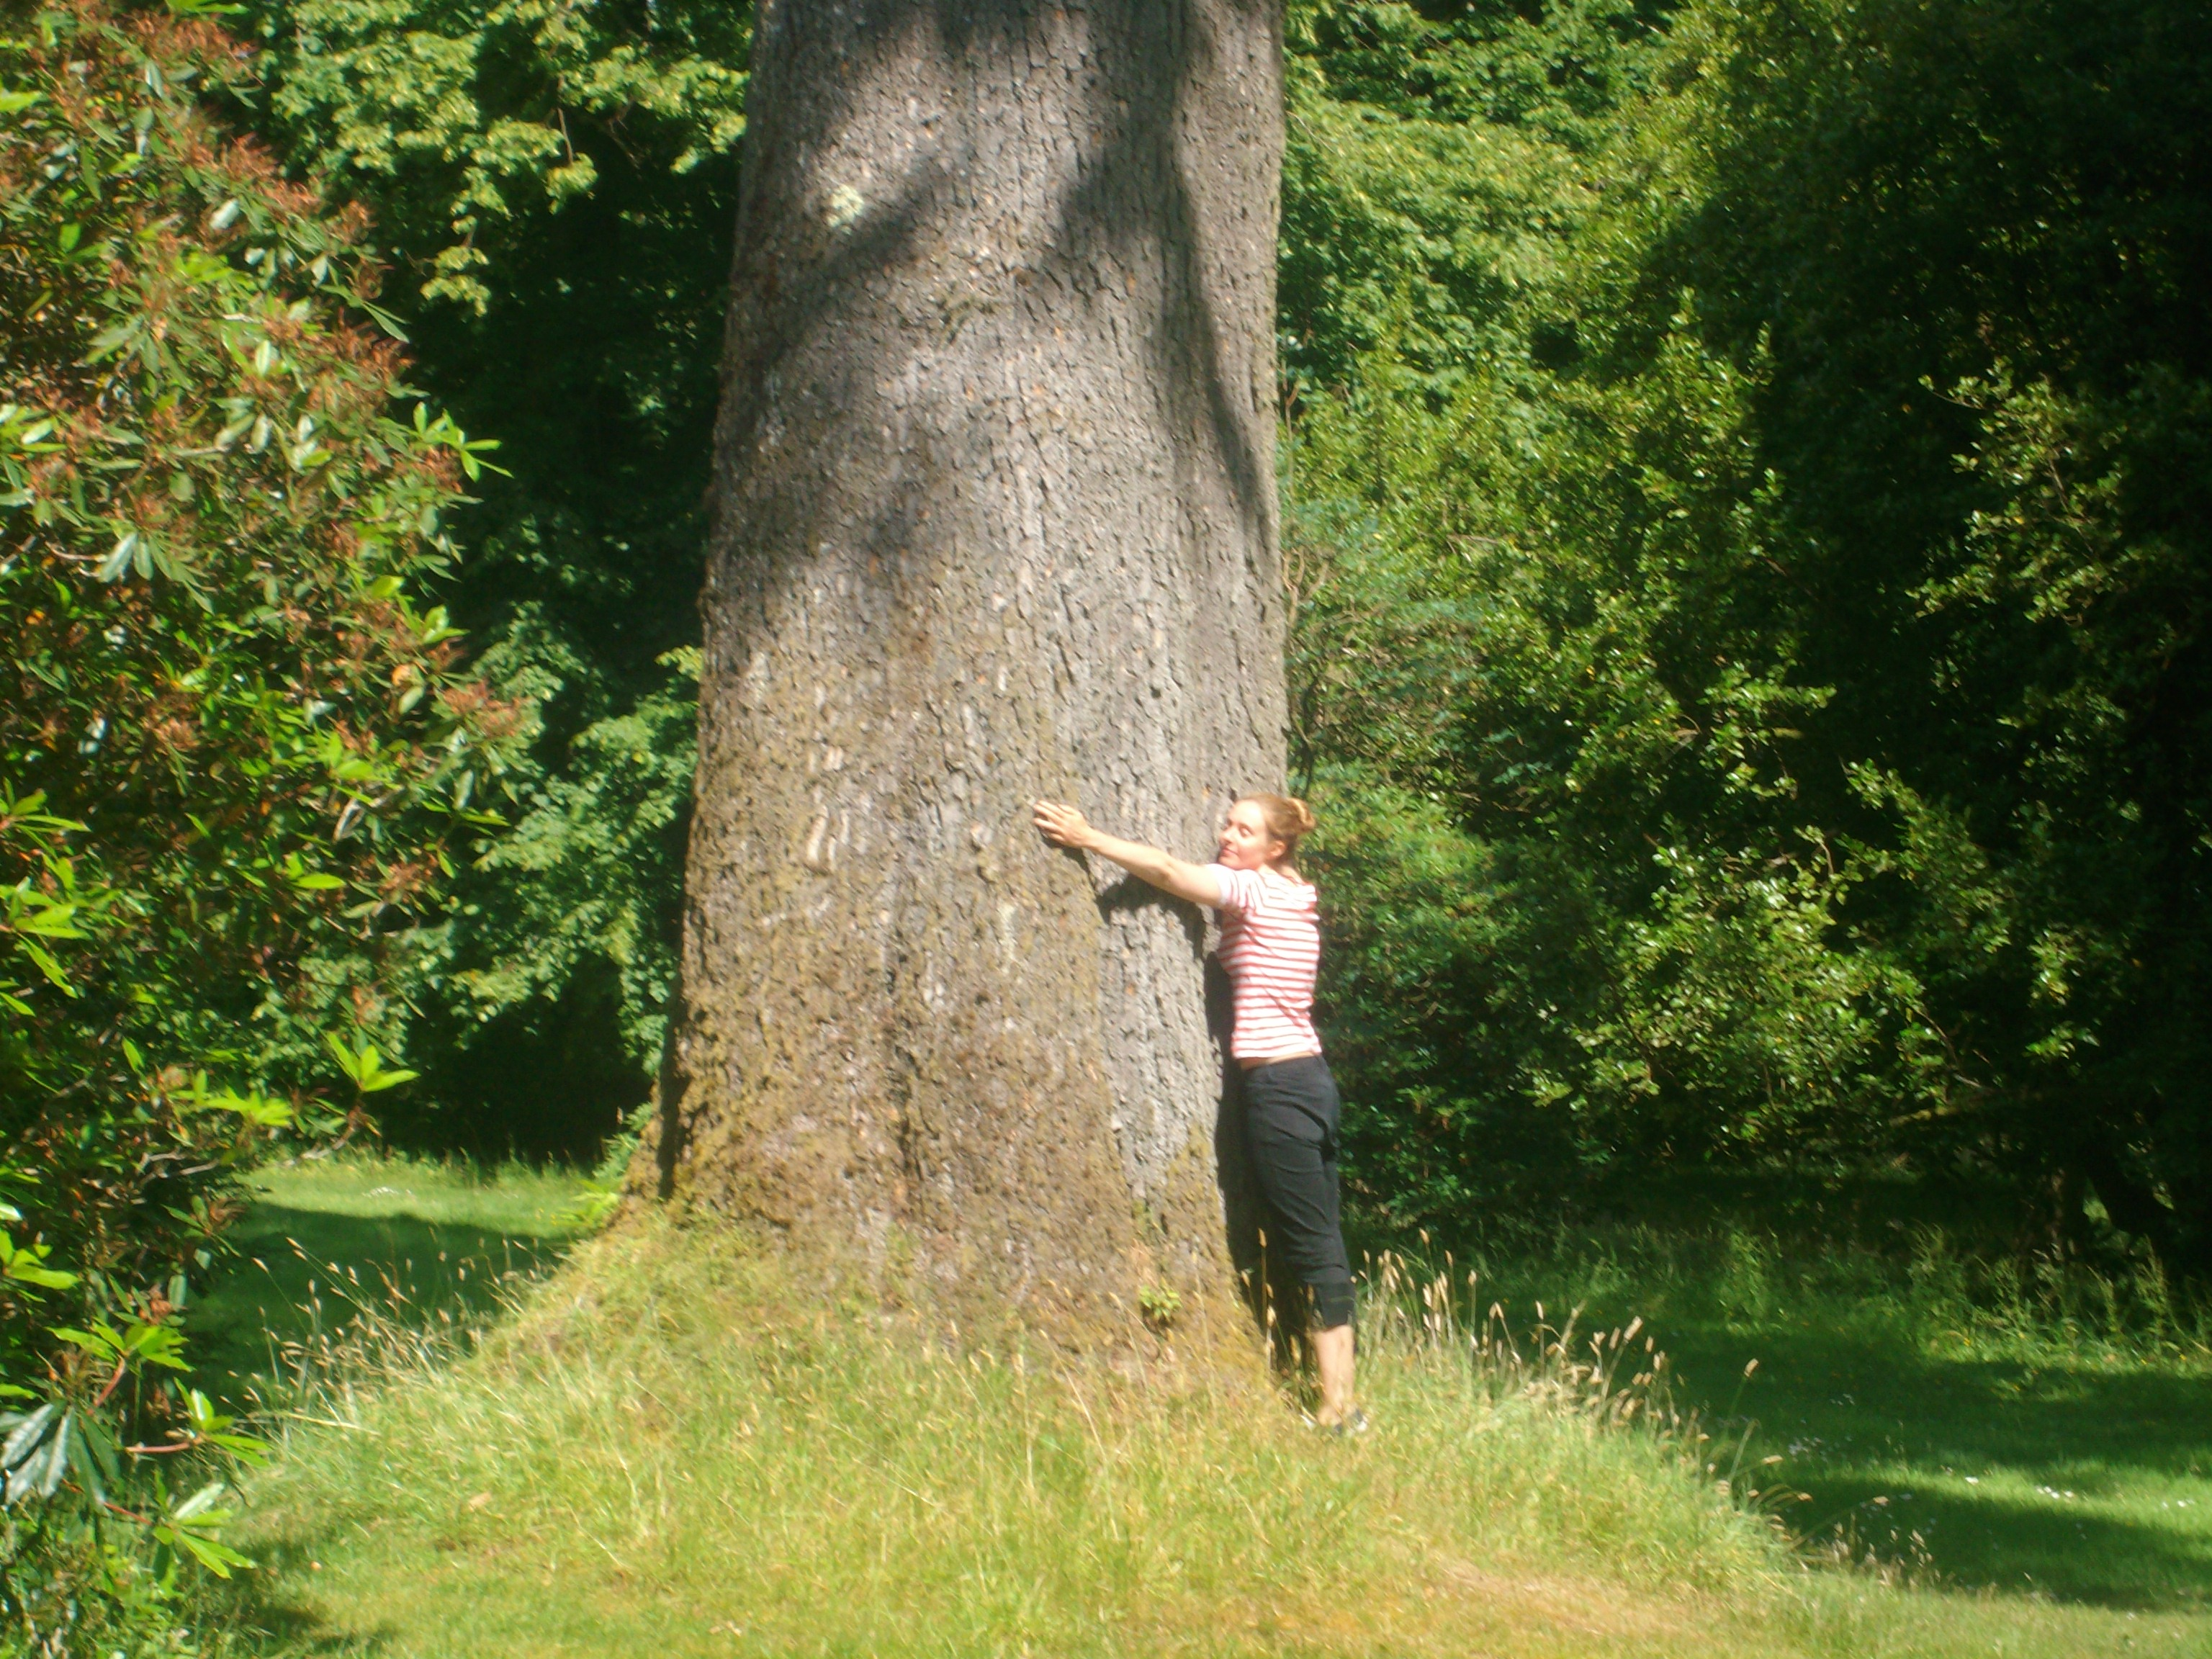 Best Reason To Hug A Tree Today They Save 850 Lives A Year. (Feel The Love)